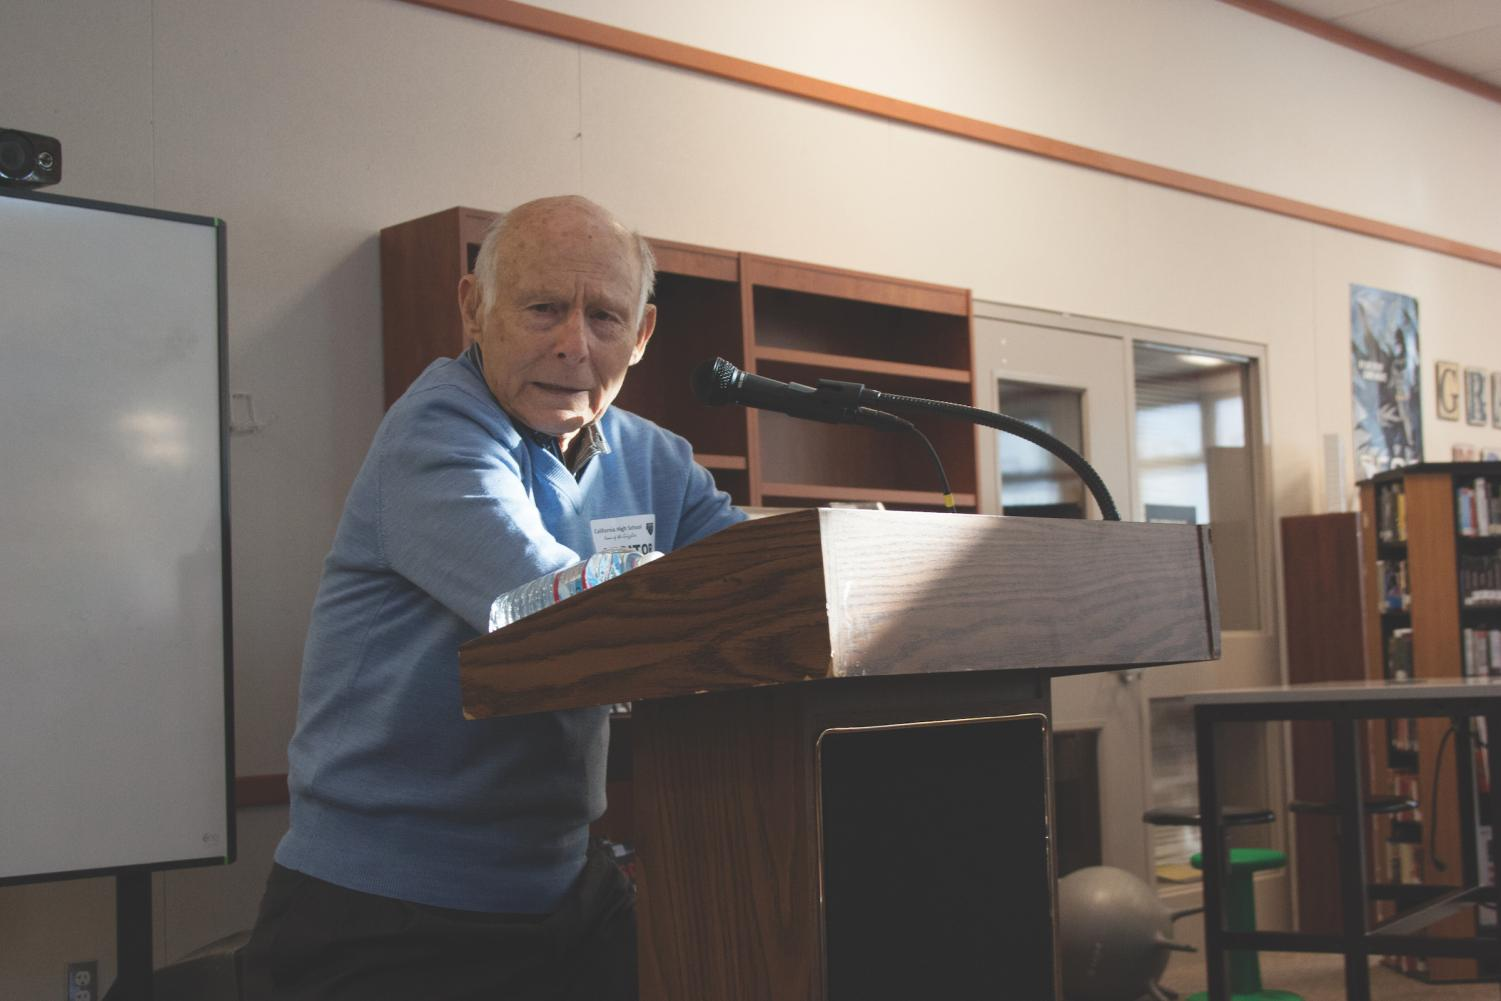 Holocaust survivor and San Ramon resident Bernie Rosner speaks to students at Cal High about his experiences at the Auschwitz and Mauthausen concentration camps. He focused his speech on the resilience of the human spirit.